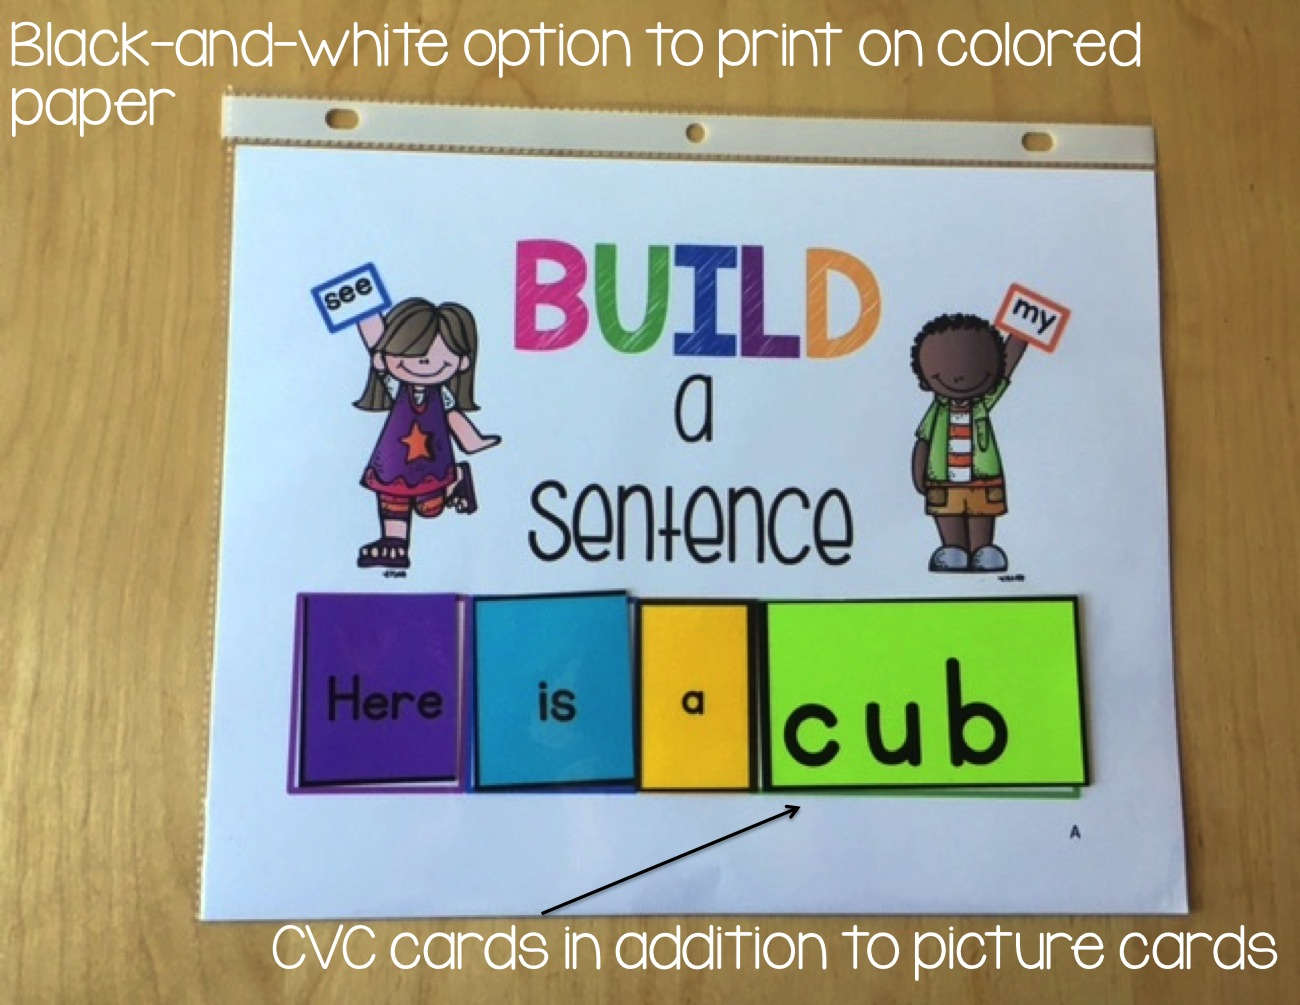 I Recently Updated With Black And White Sight Words Cards So You Could Print Onto Colored Paper Also Added Some CVC Word To Use In Place Of The